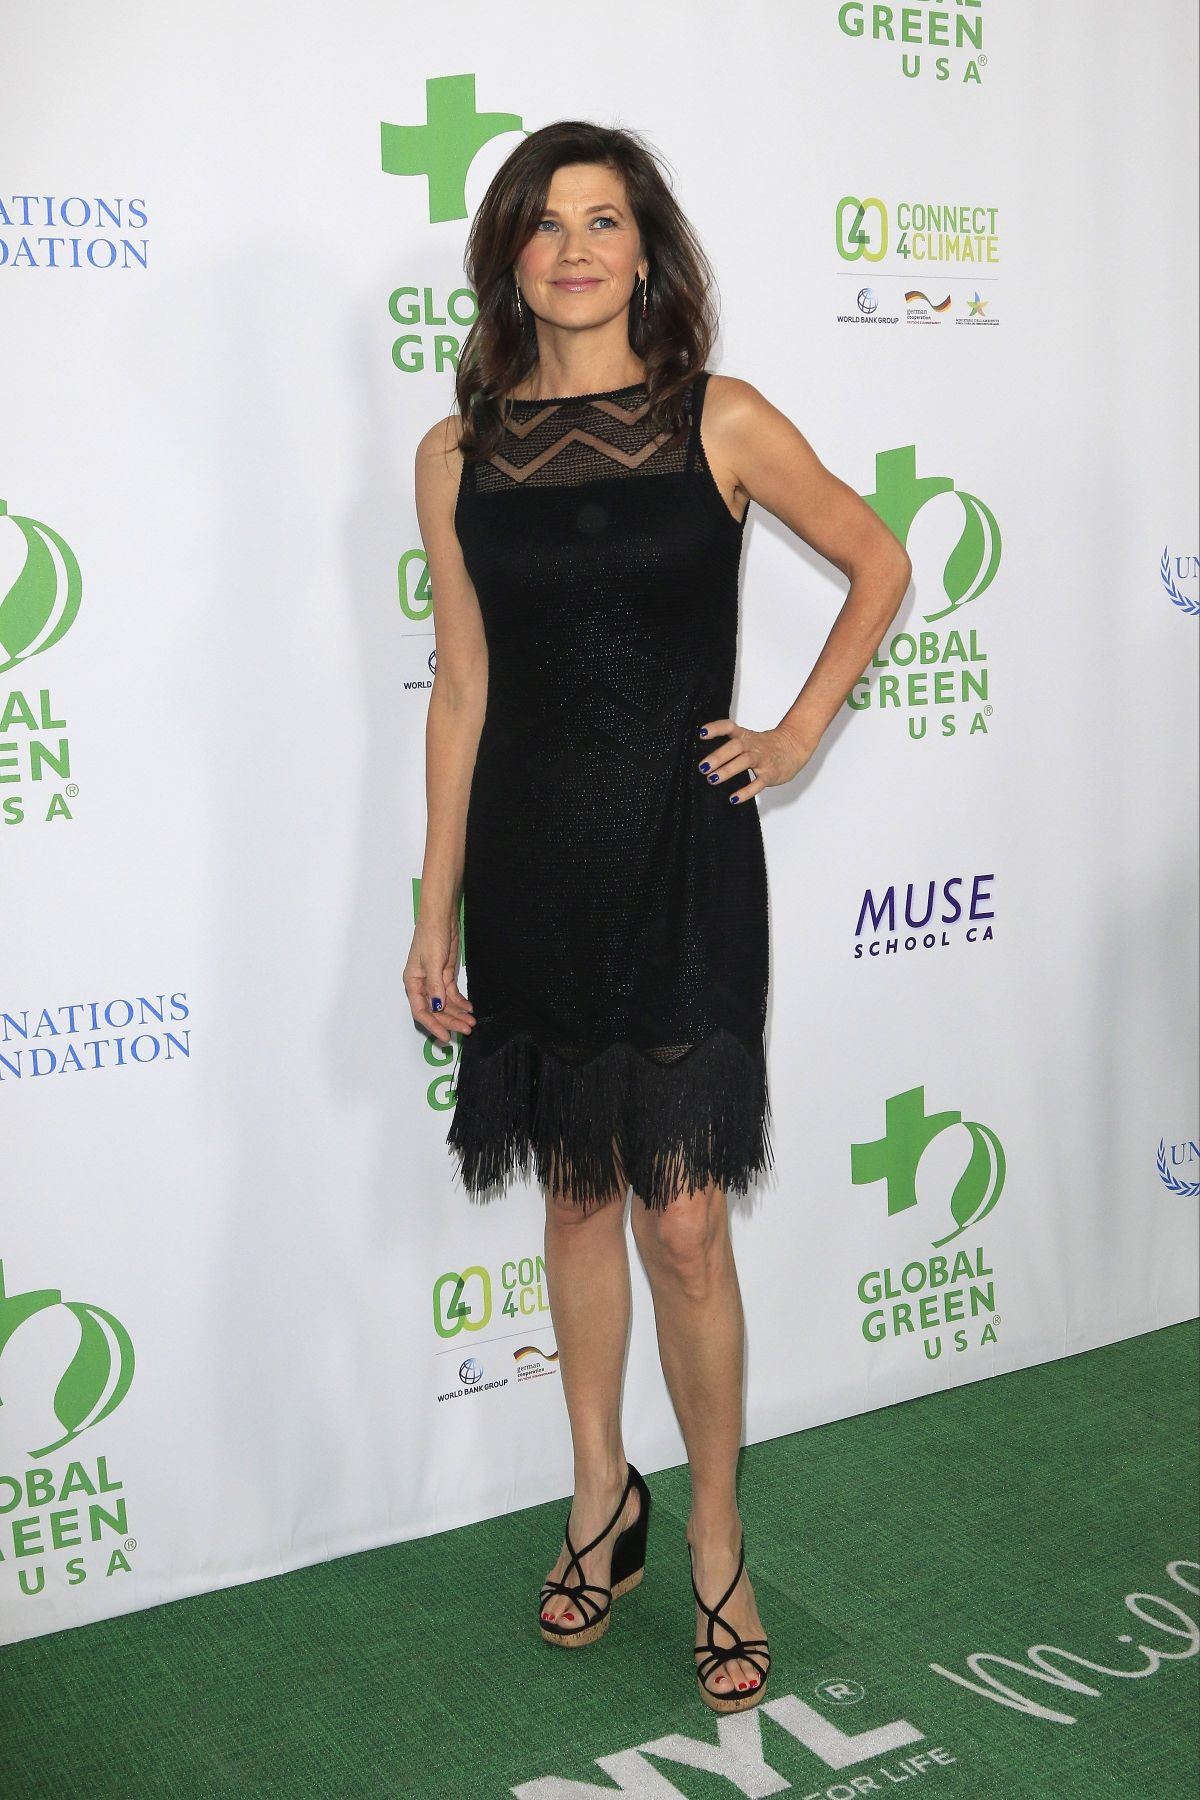 ... Green USA's 13th Annual Pre-oscar Party in Beverly Hills 02/24/2016